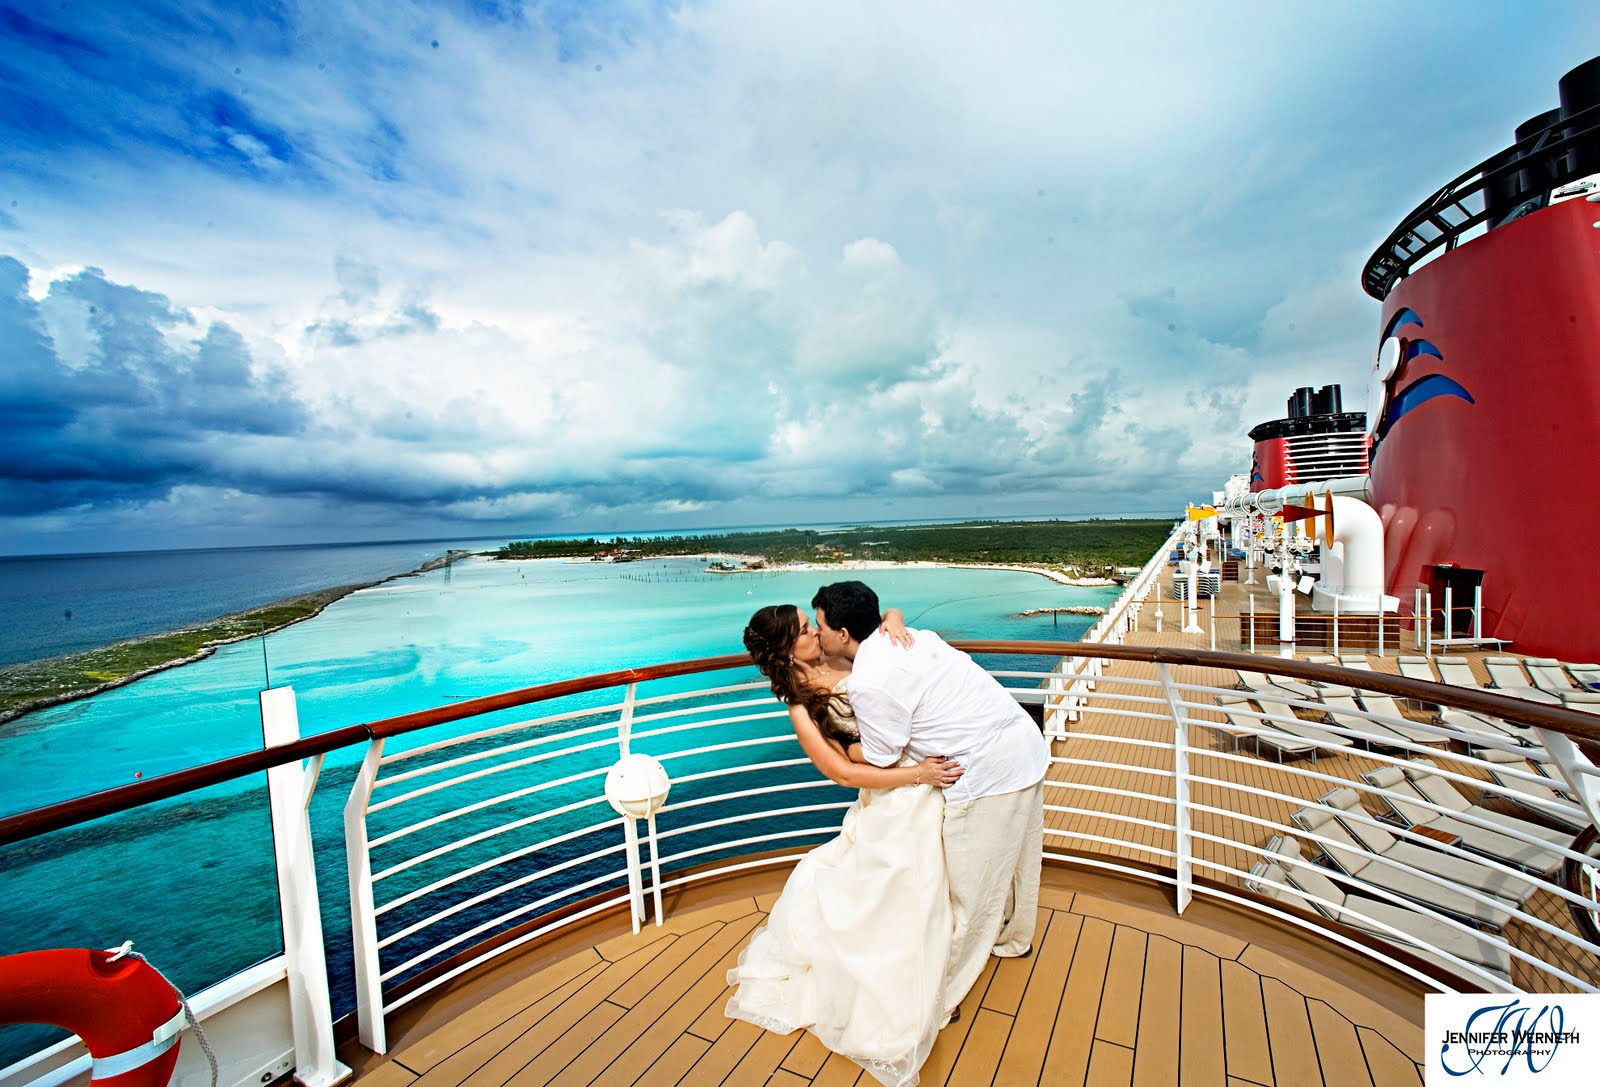 rachael georges disney cruise wedding on disney dream wedding photography jennifer werneth photography